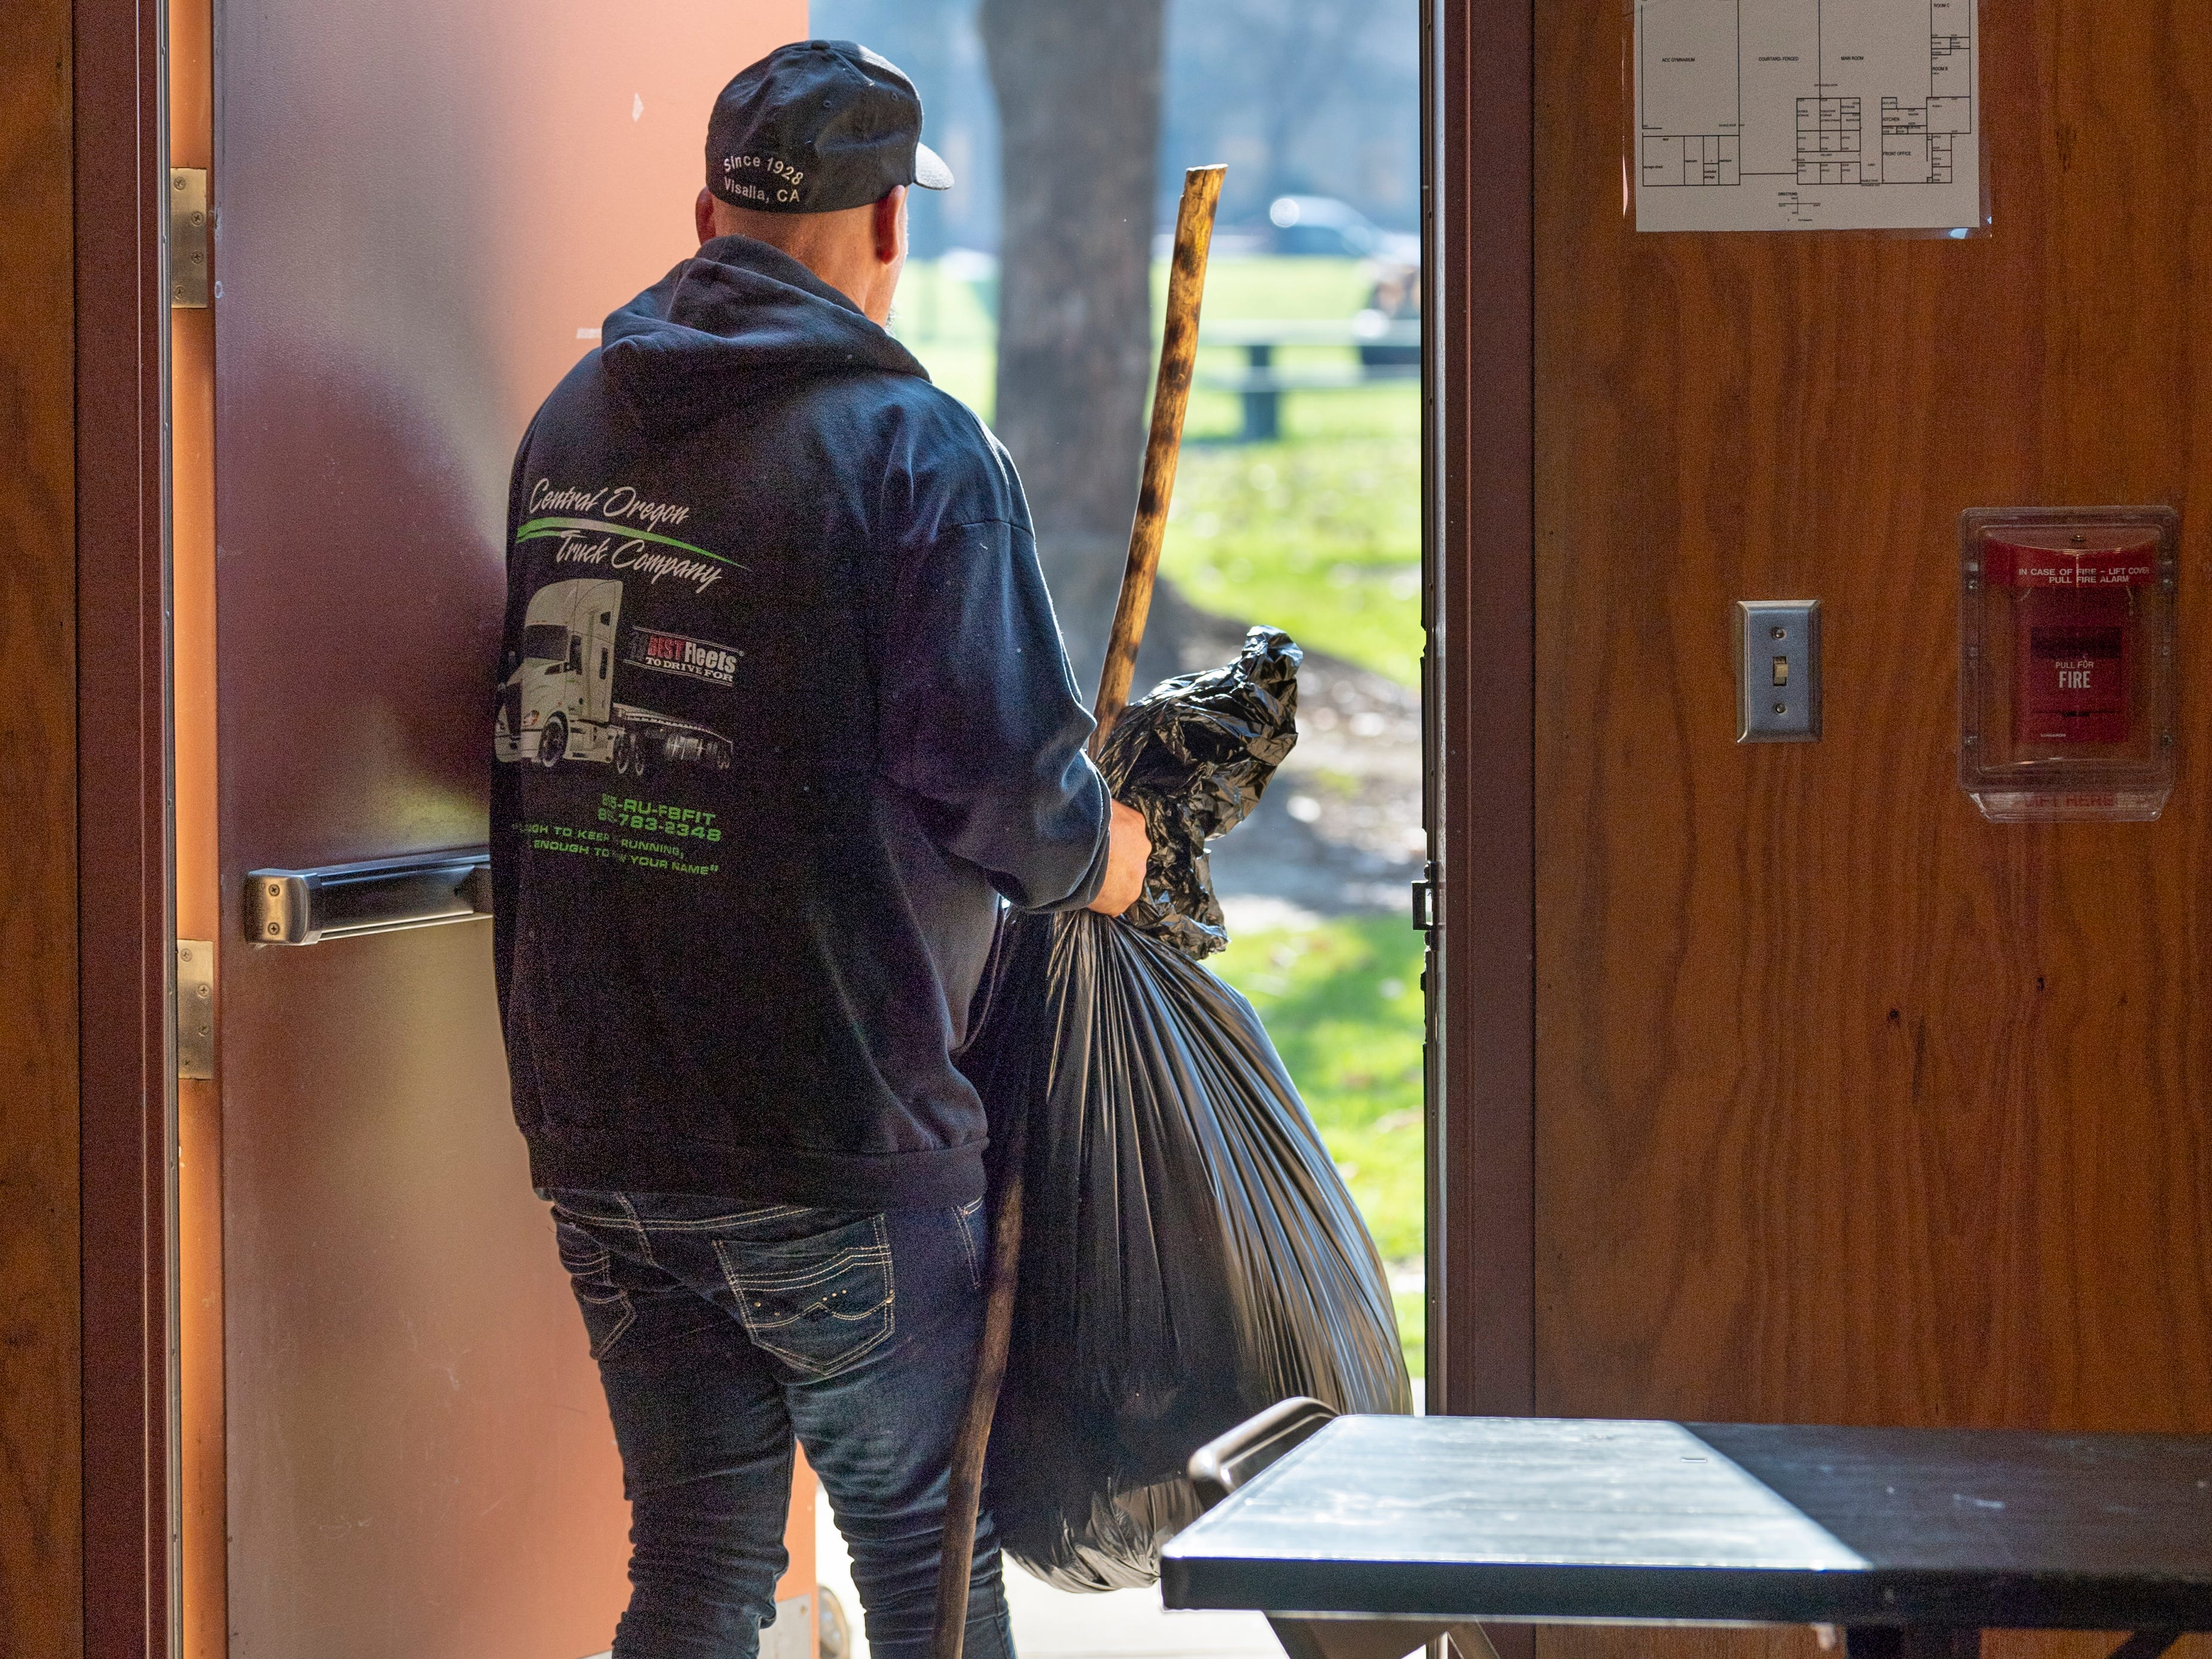 A man exits the Anthony Center in Visalia after Project Homeless Connect on Thursday, January 24, 2019.